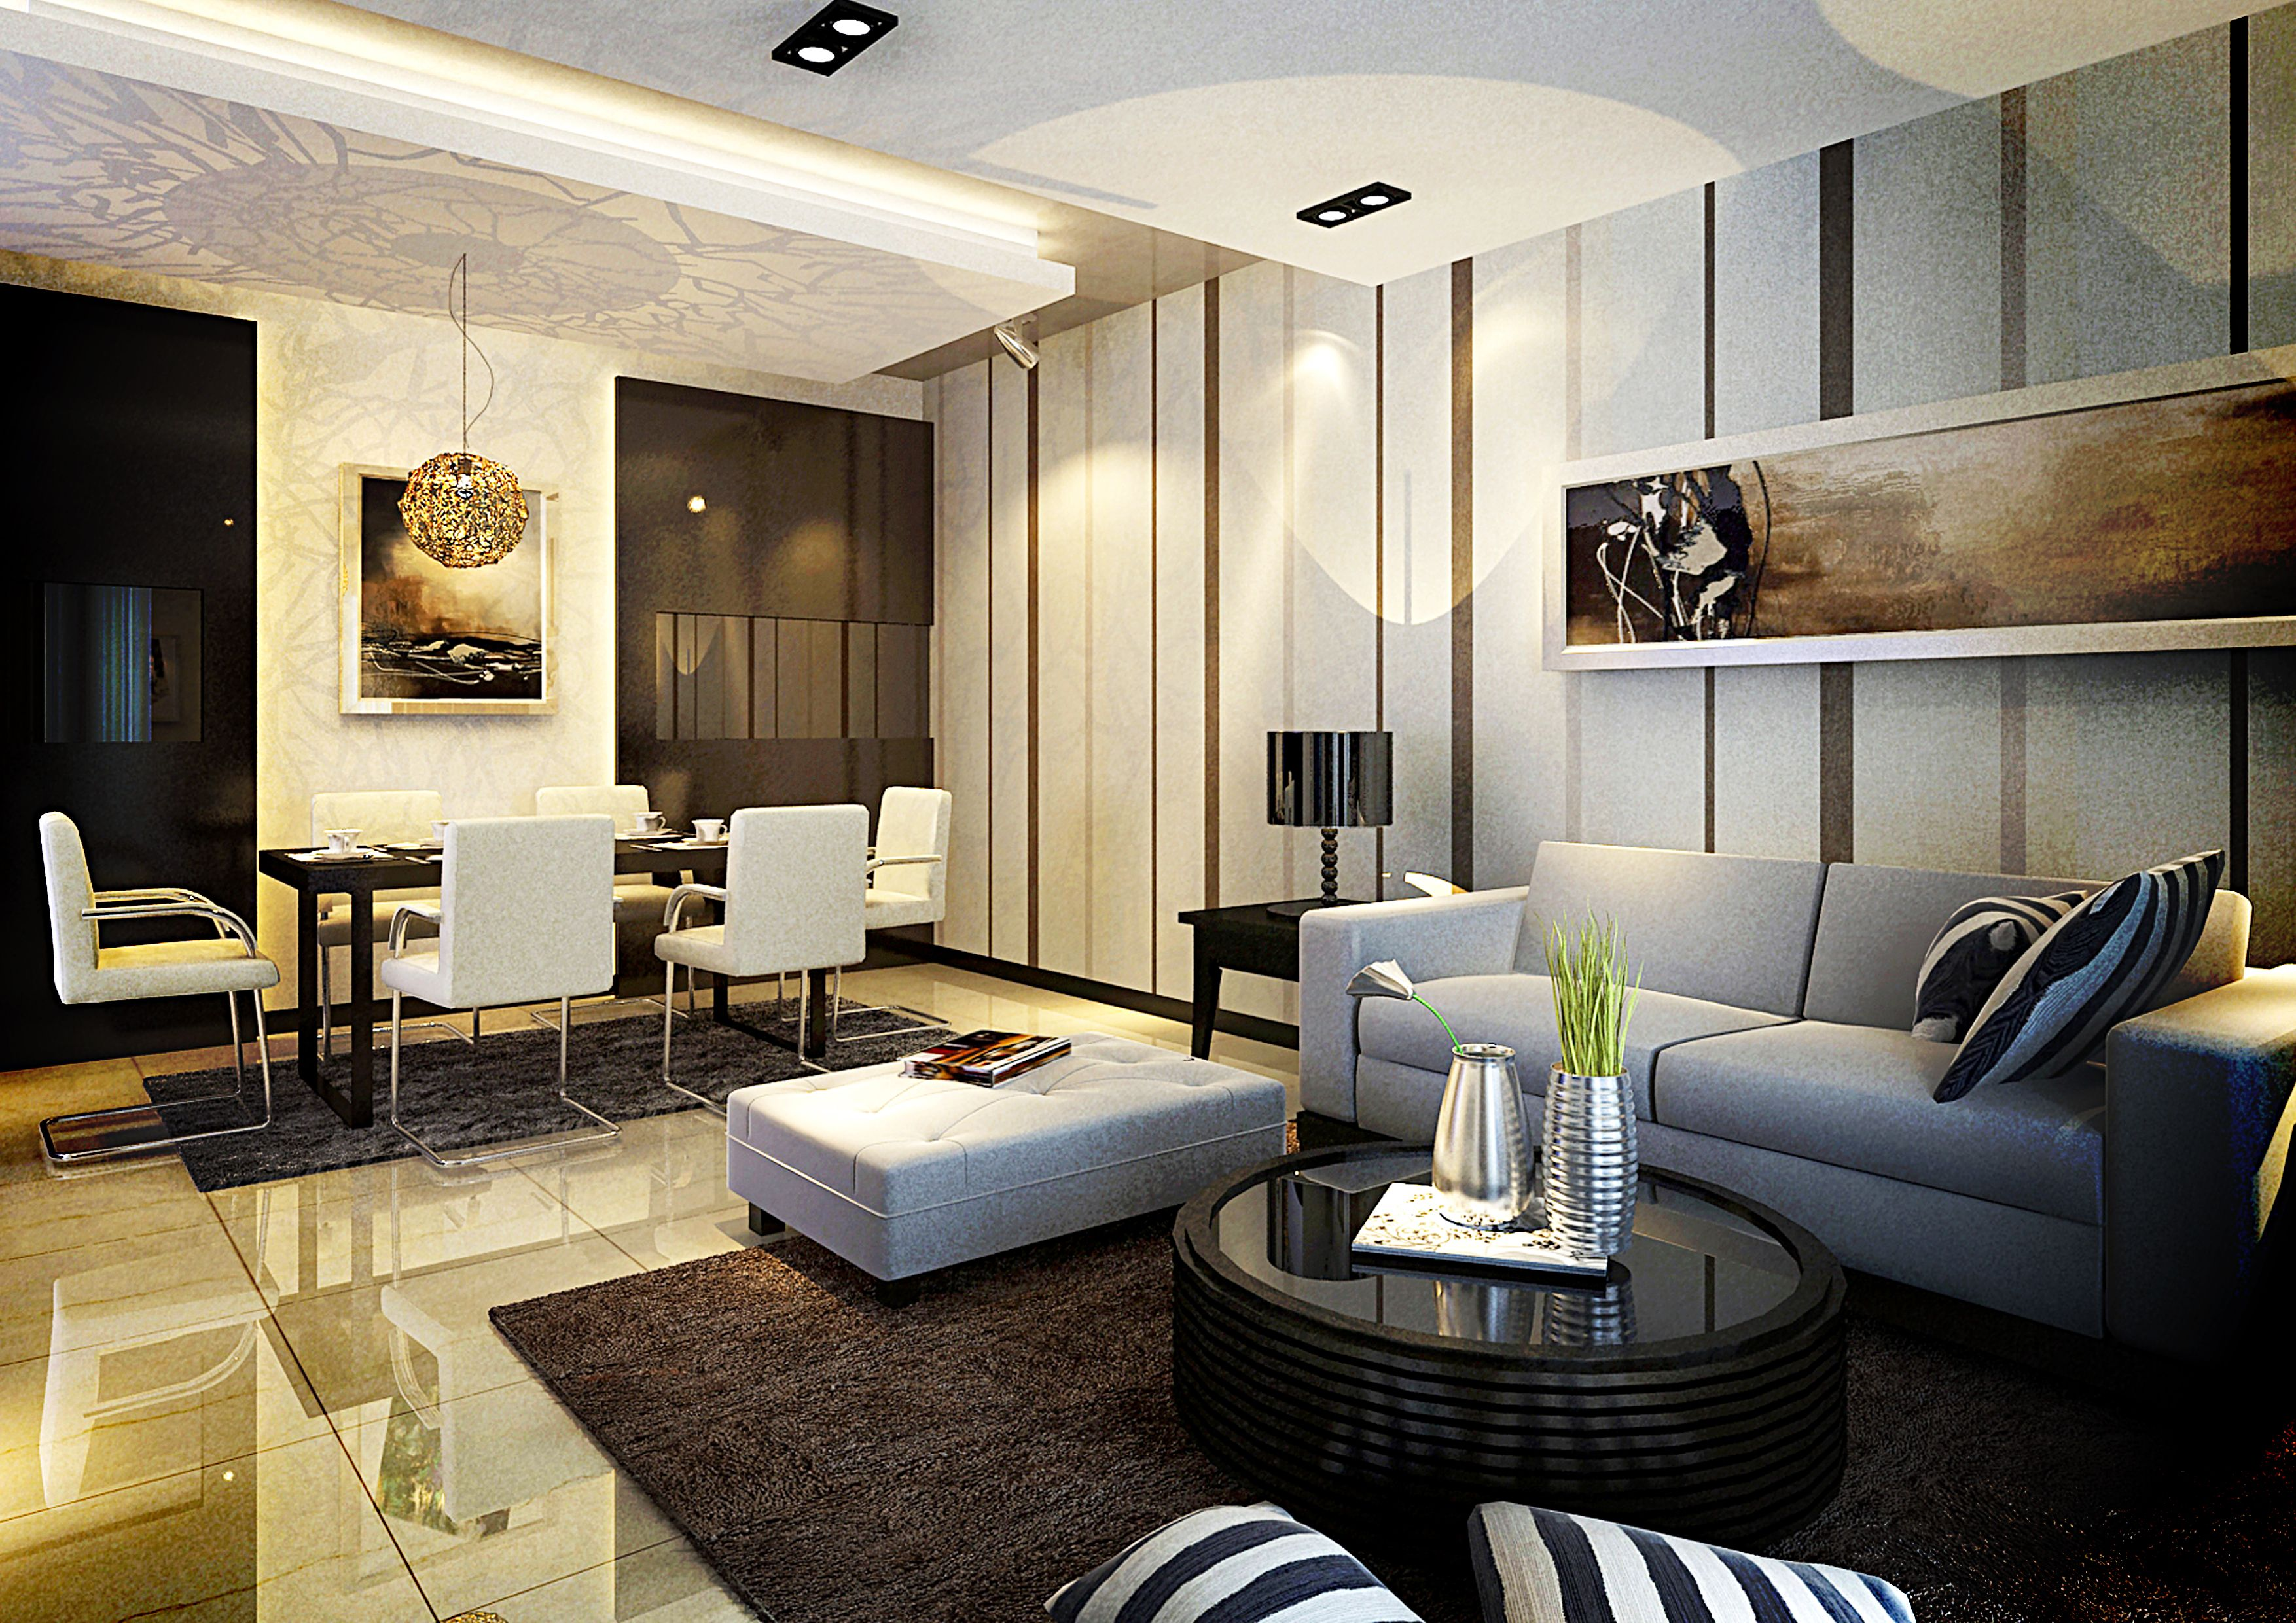 Elegant interior design in singapore interior design for Interior designs of room